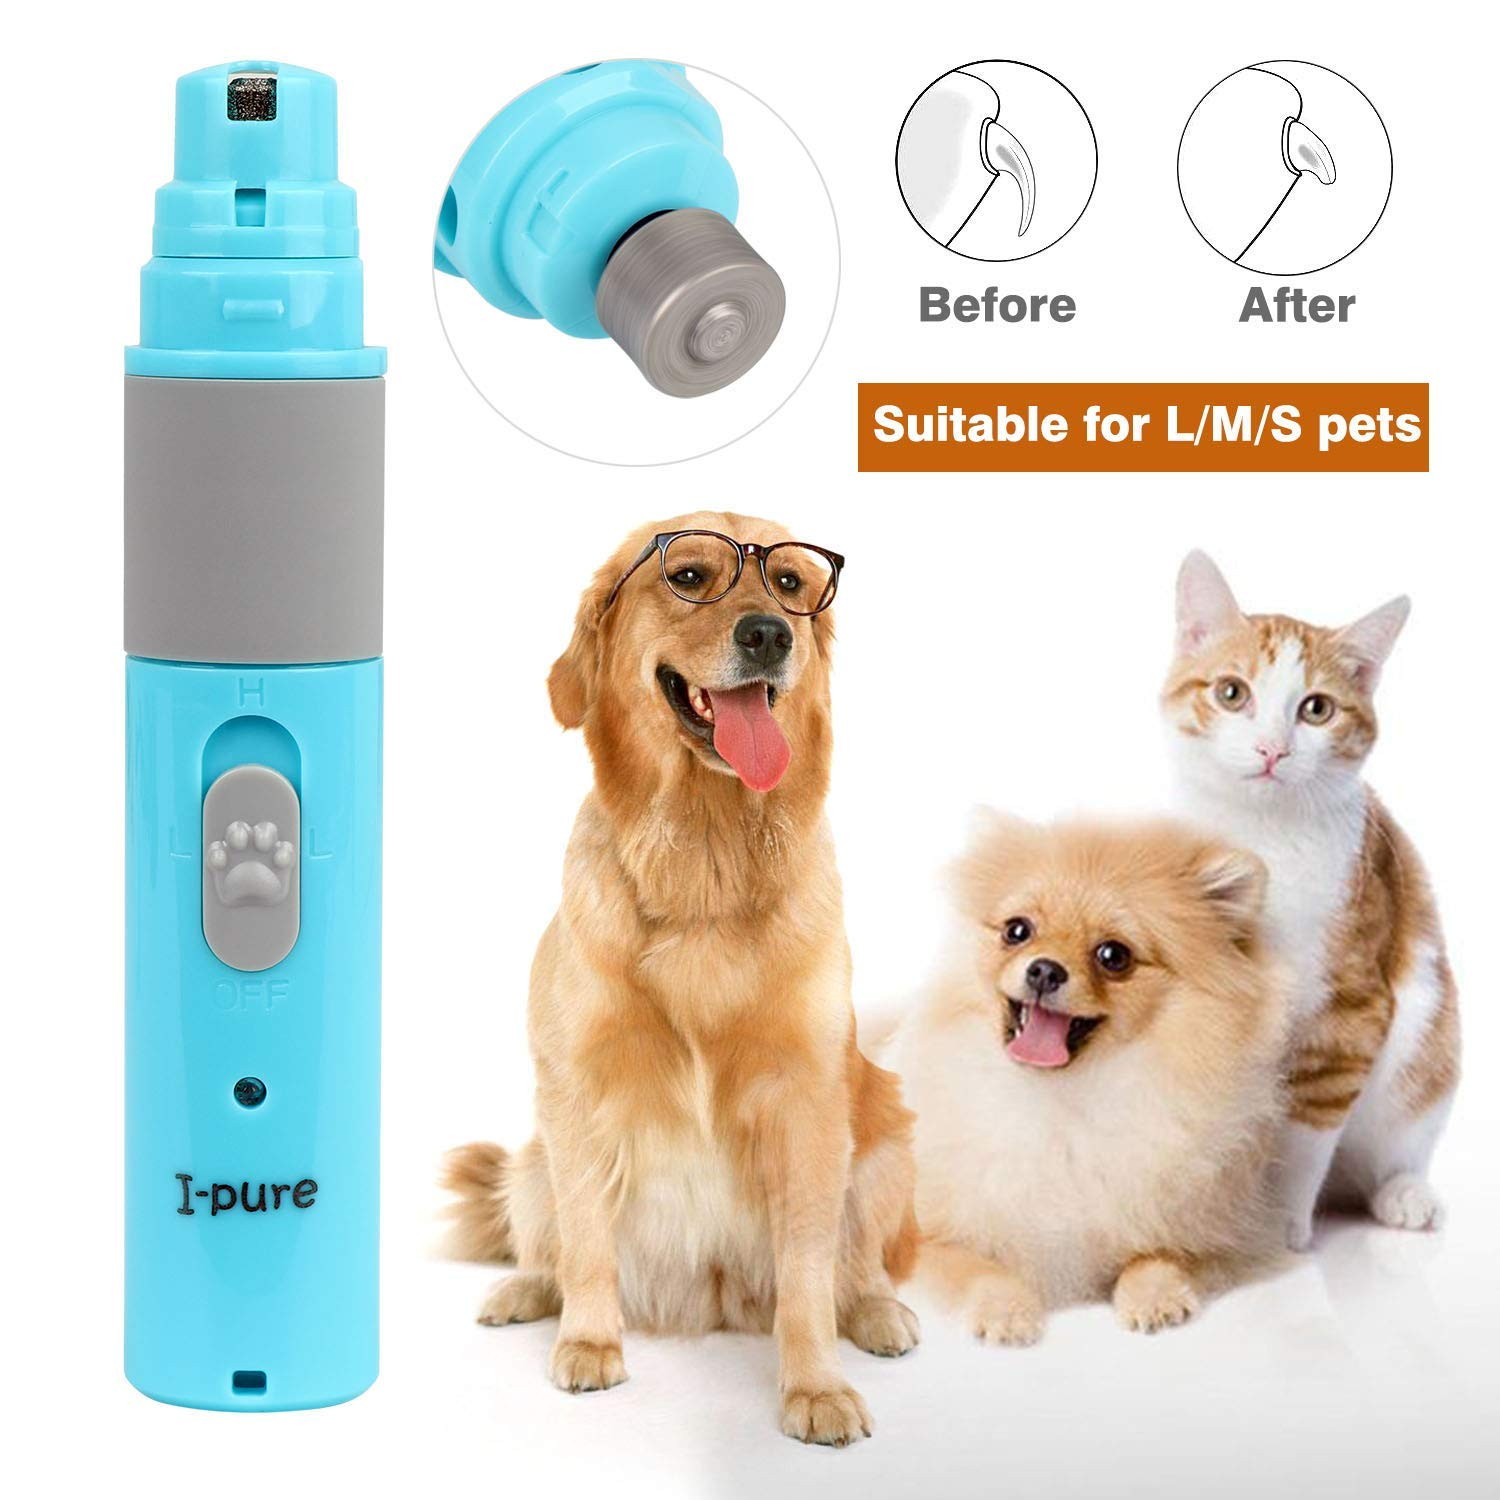 keepwe Pet Nail Grinder Electric Paw Trimmer Clipper Portable & Rechargeable Gentle Painless Paws Grooming Trimming Shaping Smoothing Ultra Quiet pet Nail Grinder